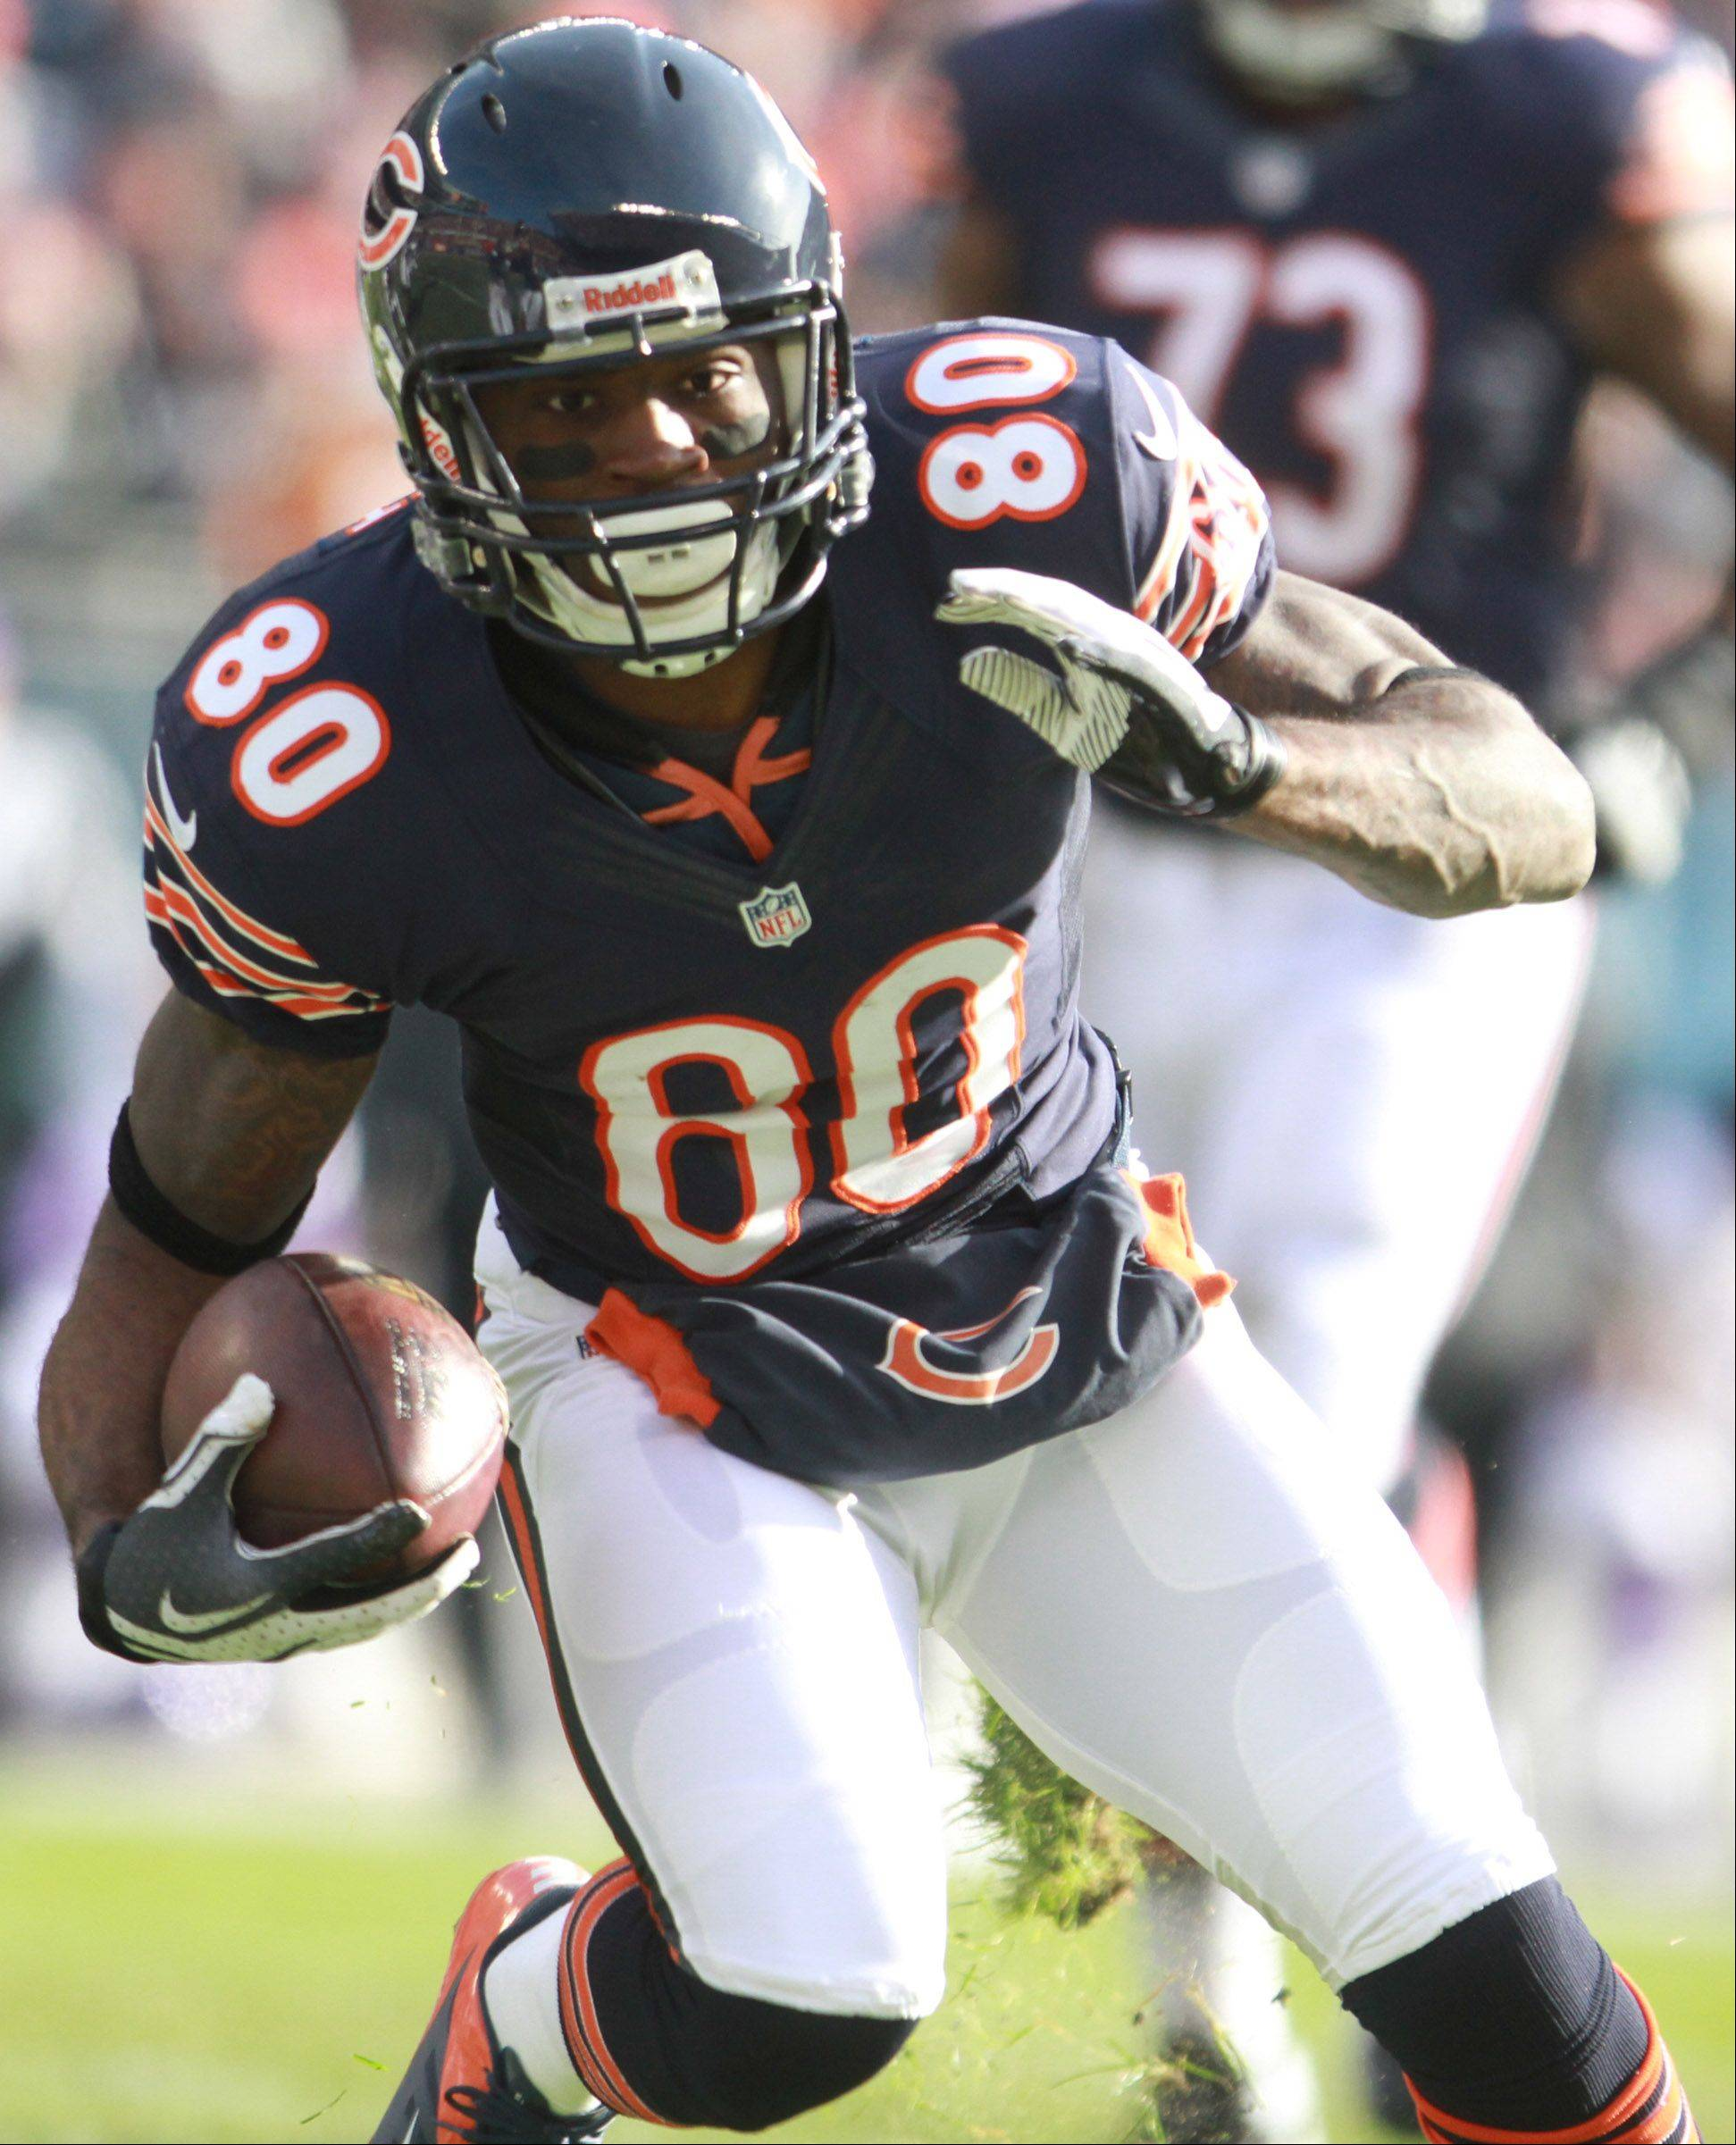 Chicago Bears wide receiver Earl Bennett runs the ball after catching a pass from quarterback Jay Cutler at Soldier Field Sunday.